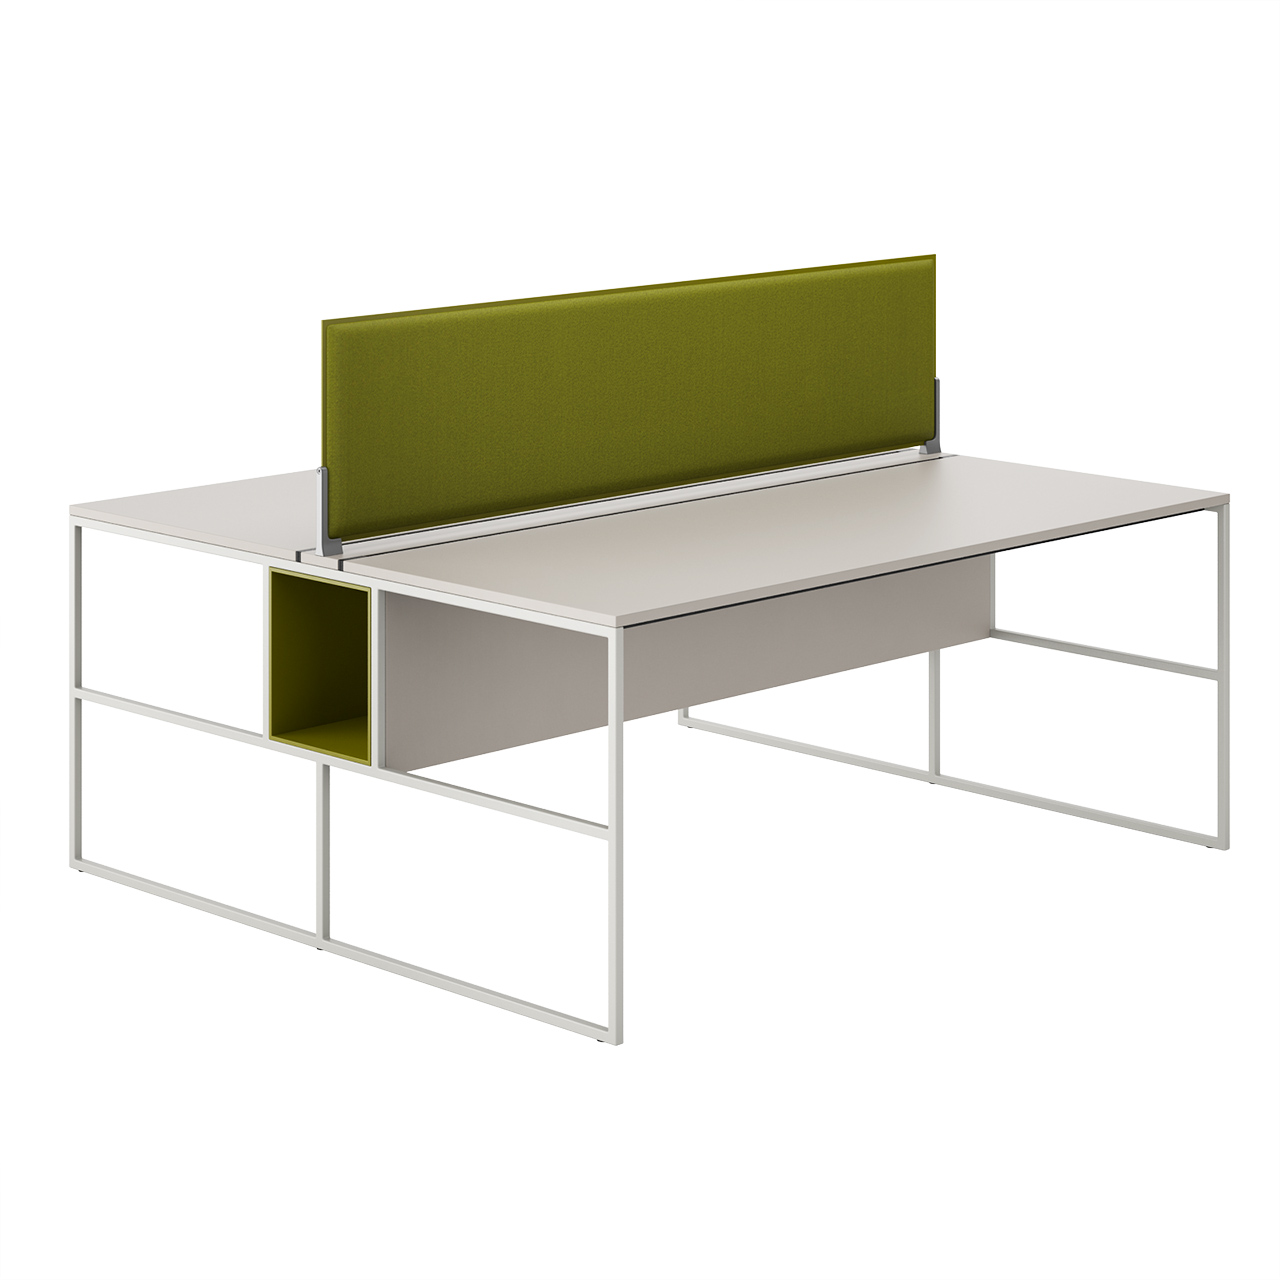 Venti Double Table System by MDF Italia